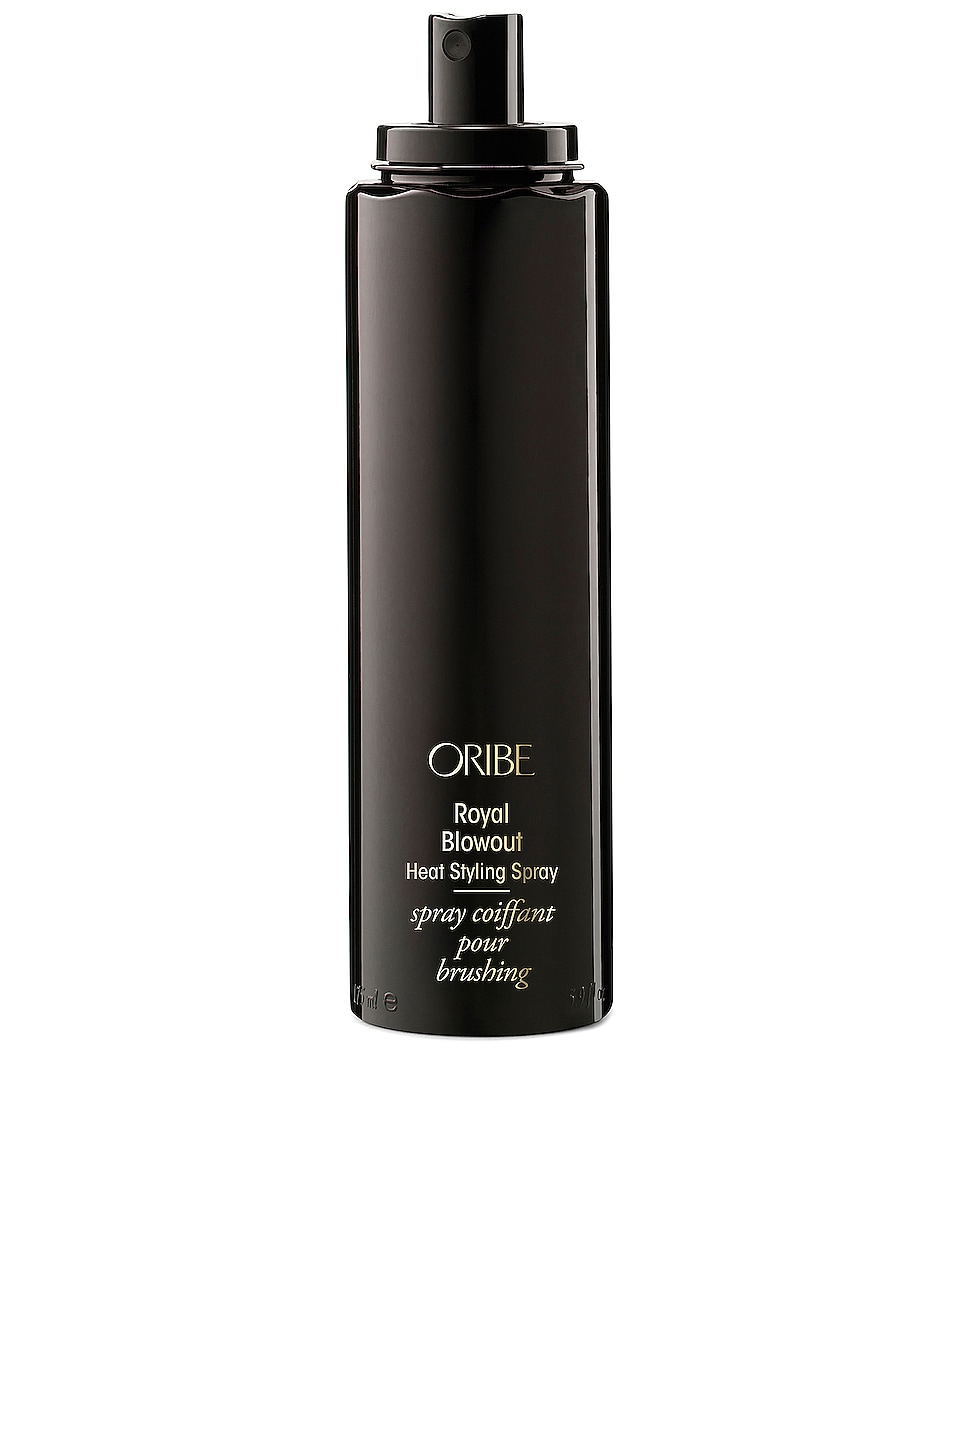 Oribe Royal Blowout Heat Styling Spray in All